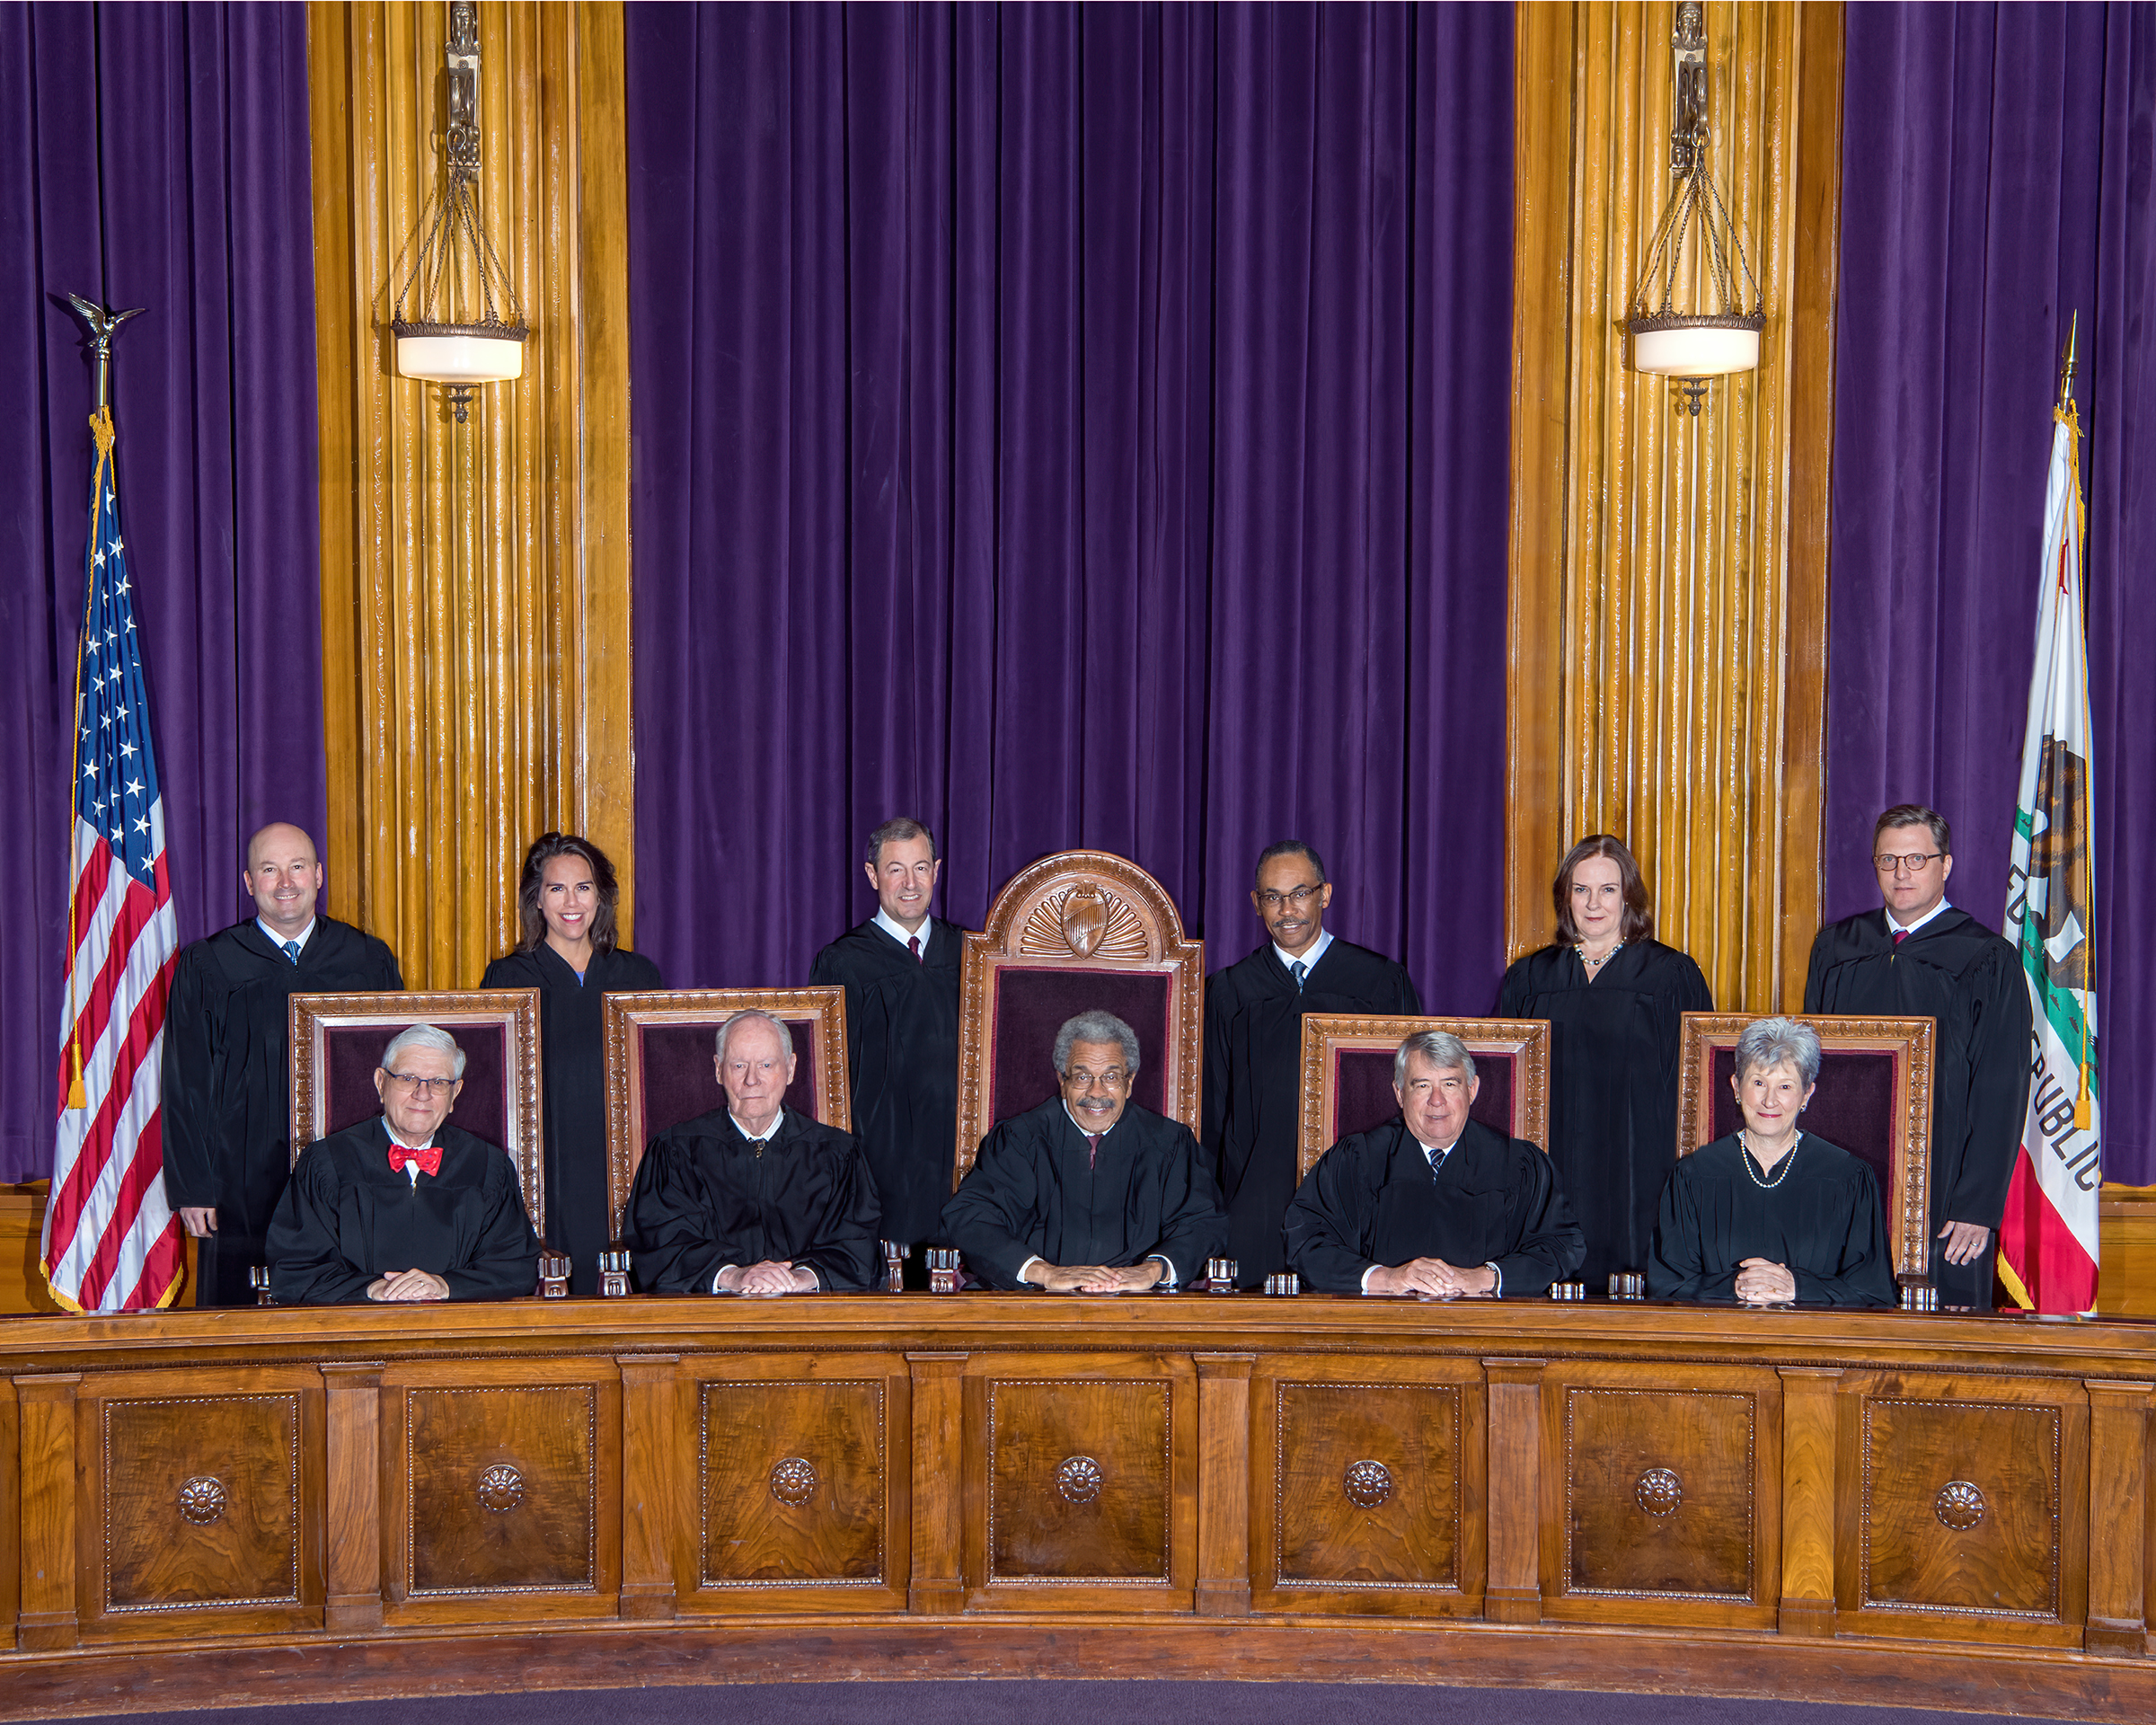 3rd District Court of Appeal Justices